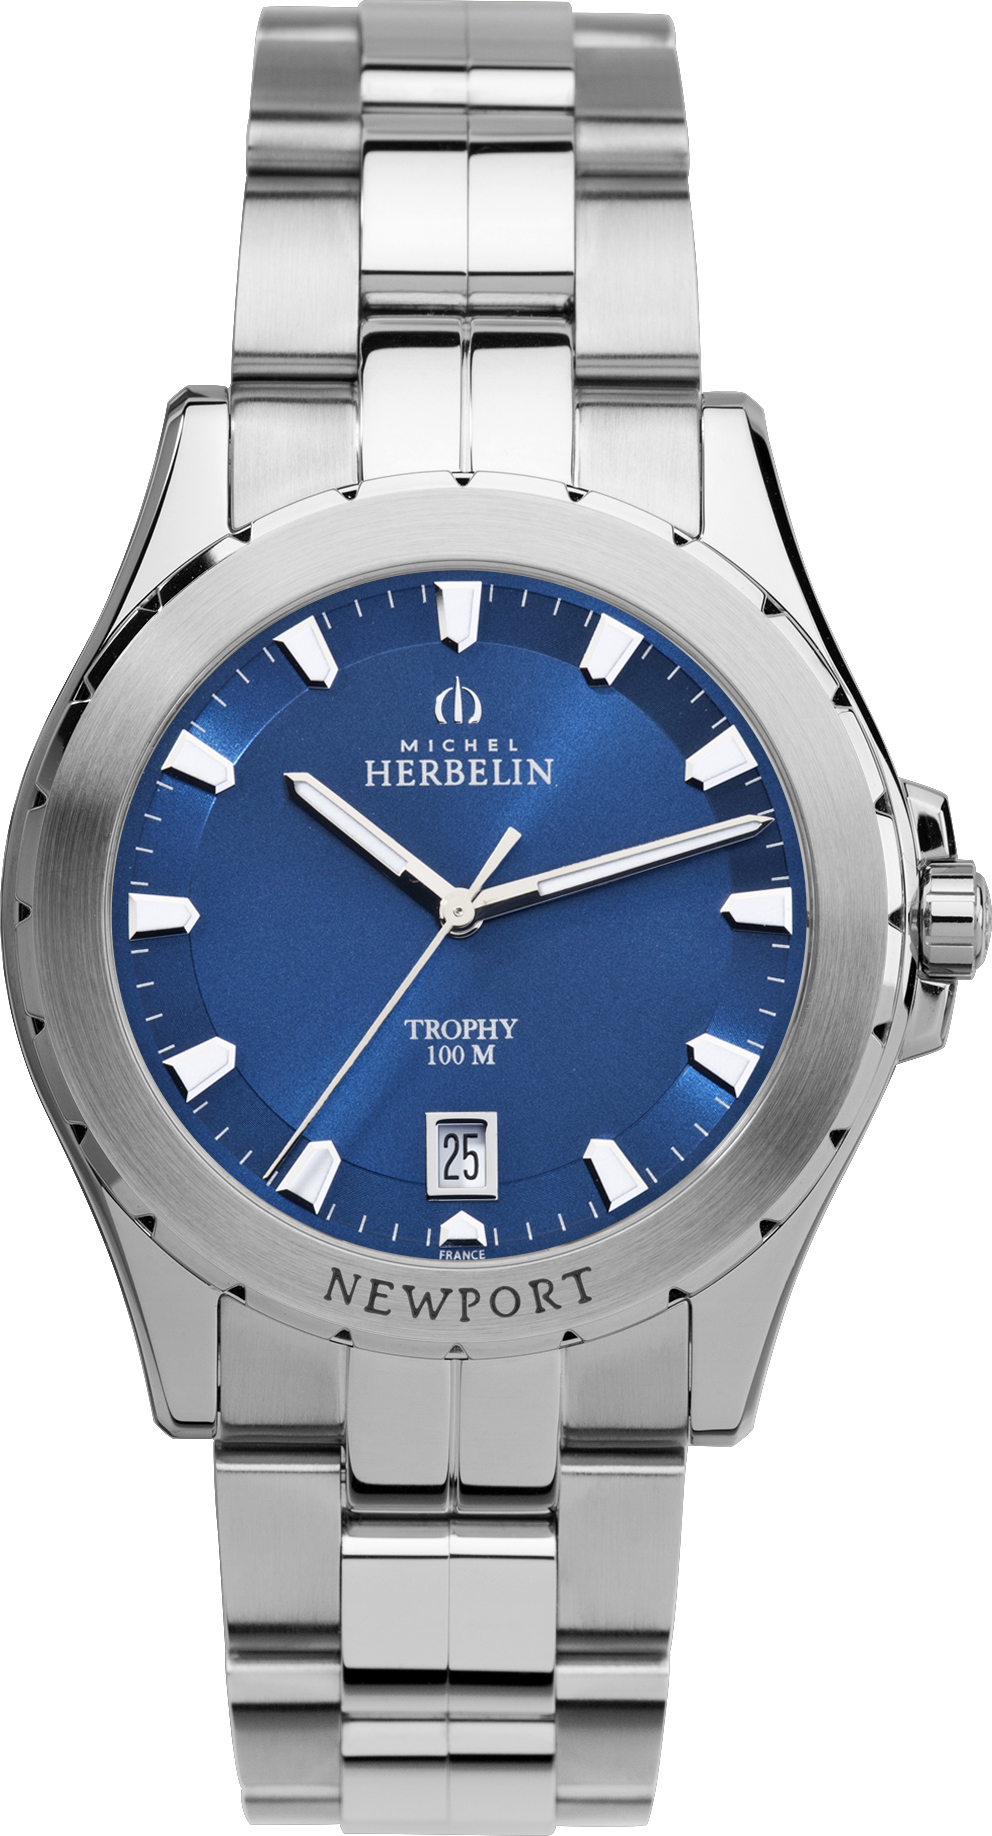 Mens St Steel Newport Trophy Bracelet watch